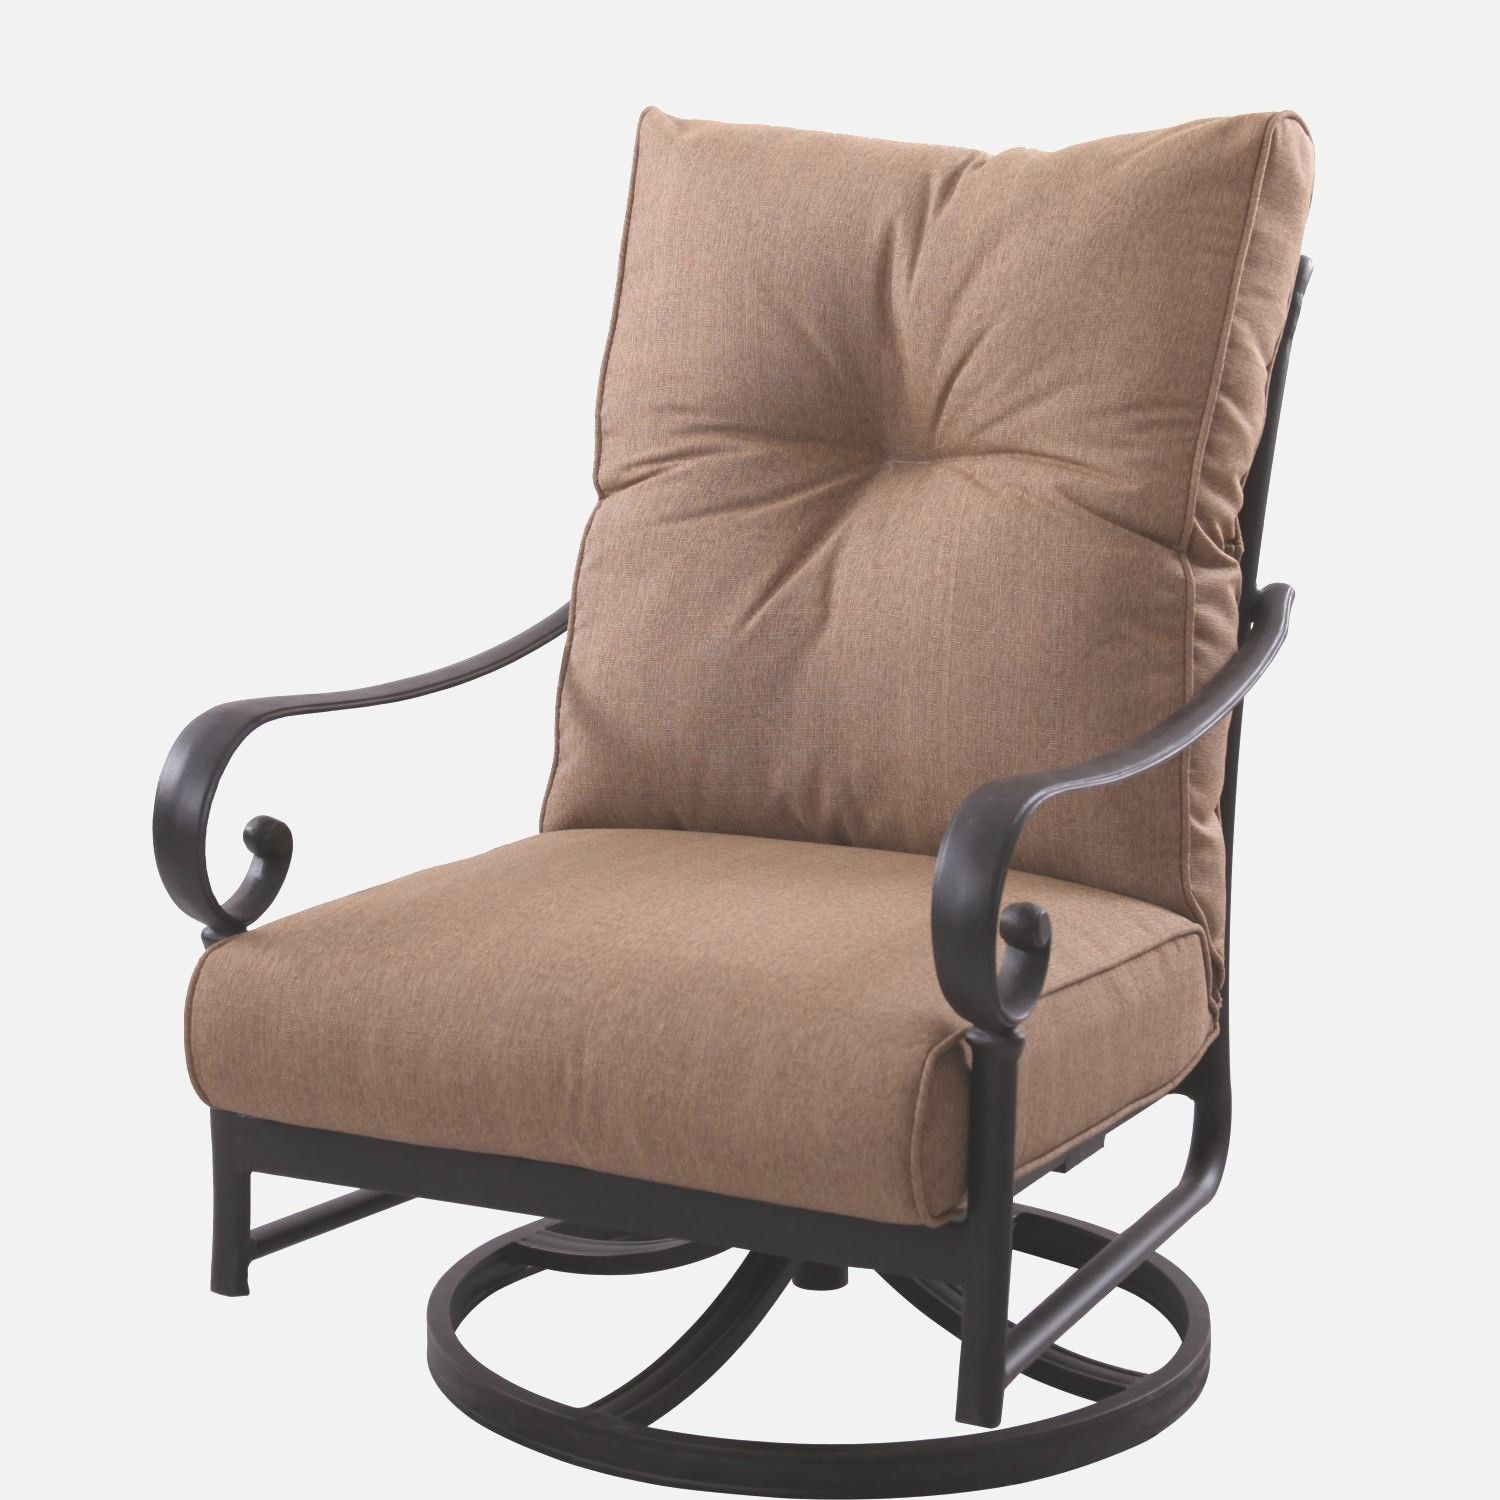 High Back Swivel Rocker Patio Chairs